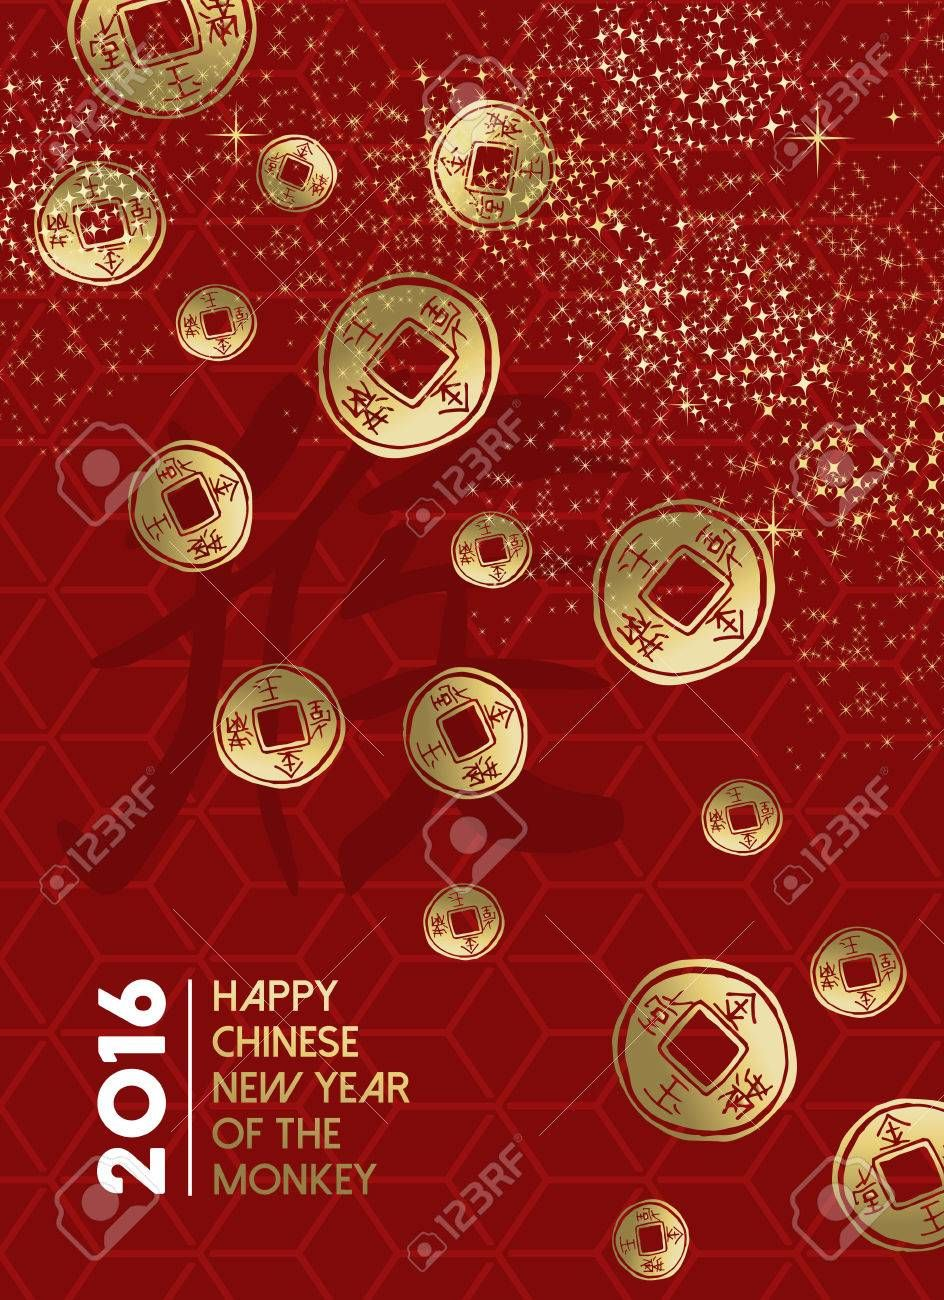 2016 happy chinese new year of the monkey traditional symbols with calligraphy and stars in gold color over red pattern background stock vector 49487381